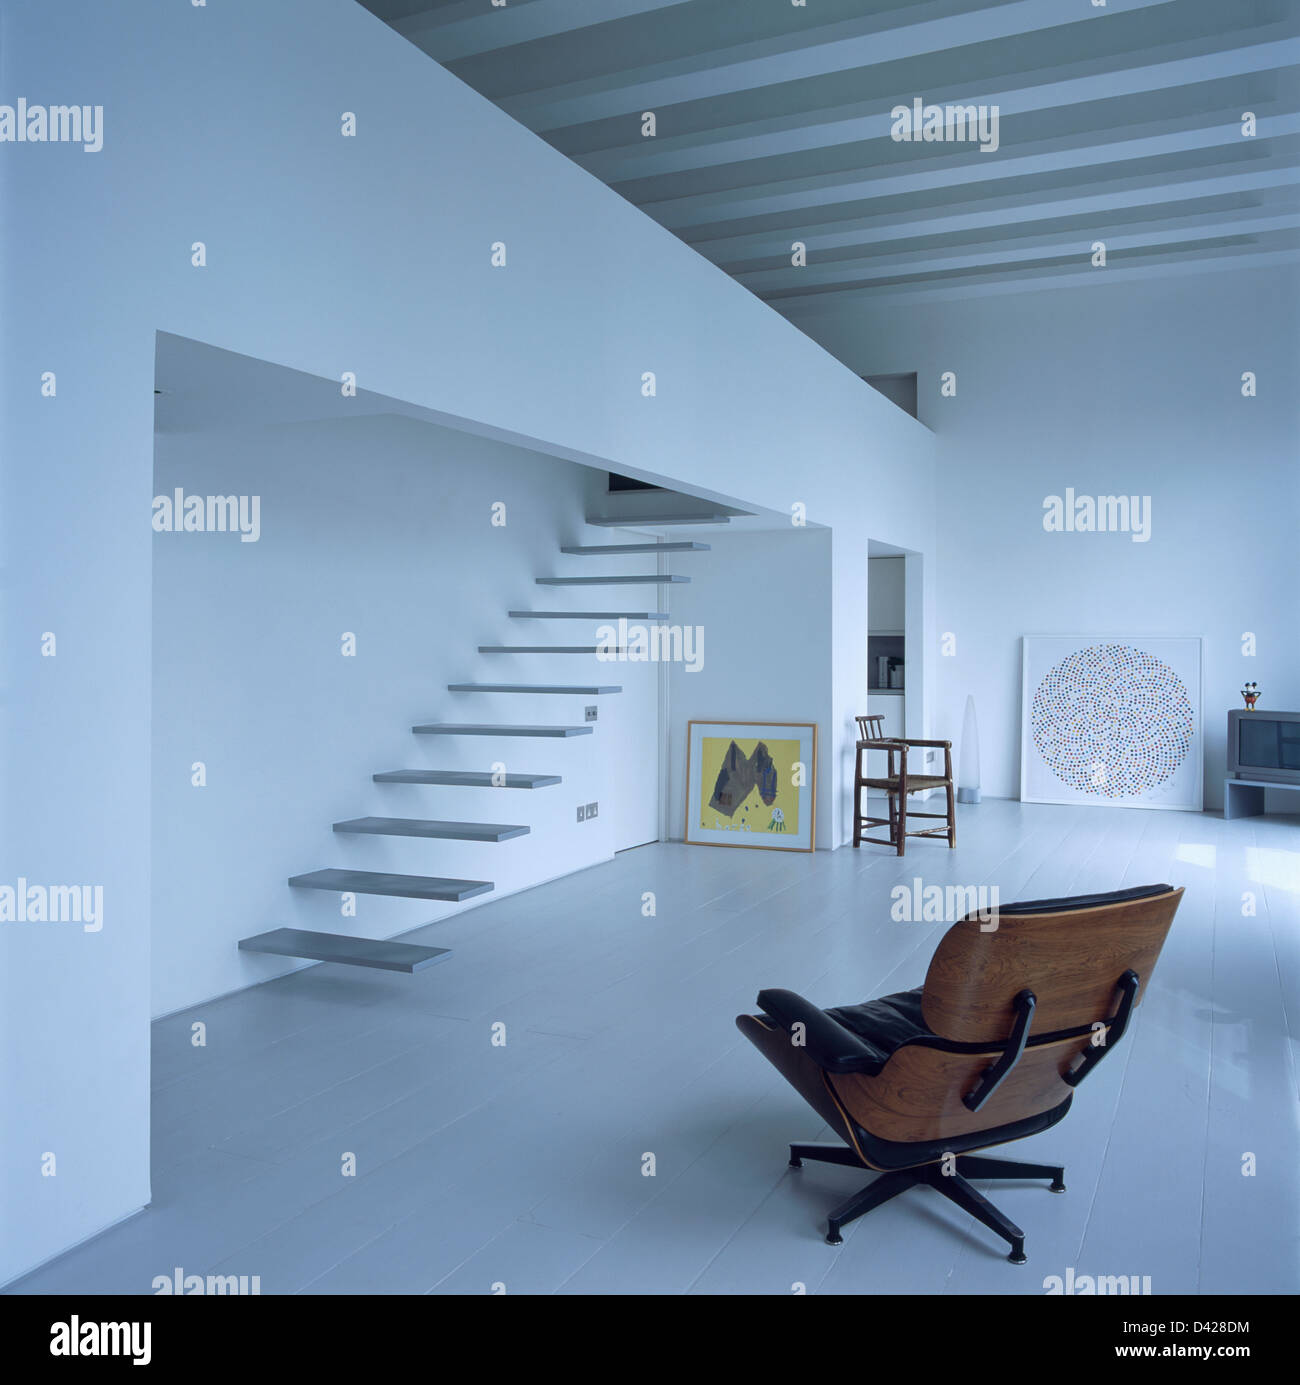 Charles Eames Chair Stock Photos & Charles Eames Chair Stock Images ...